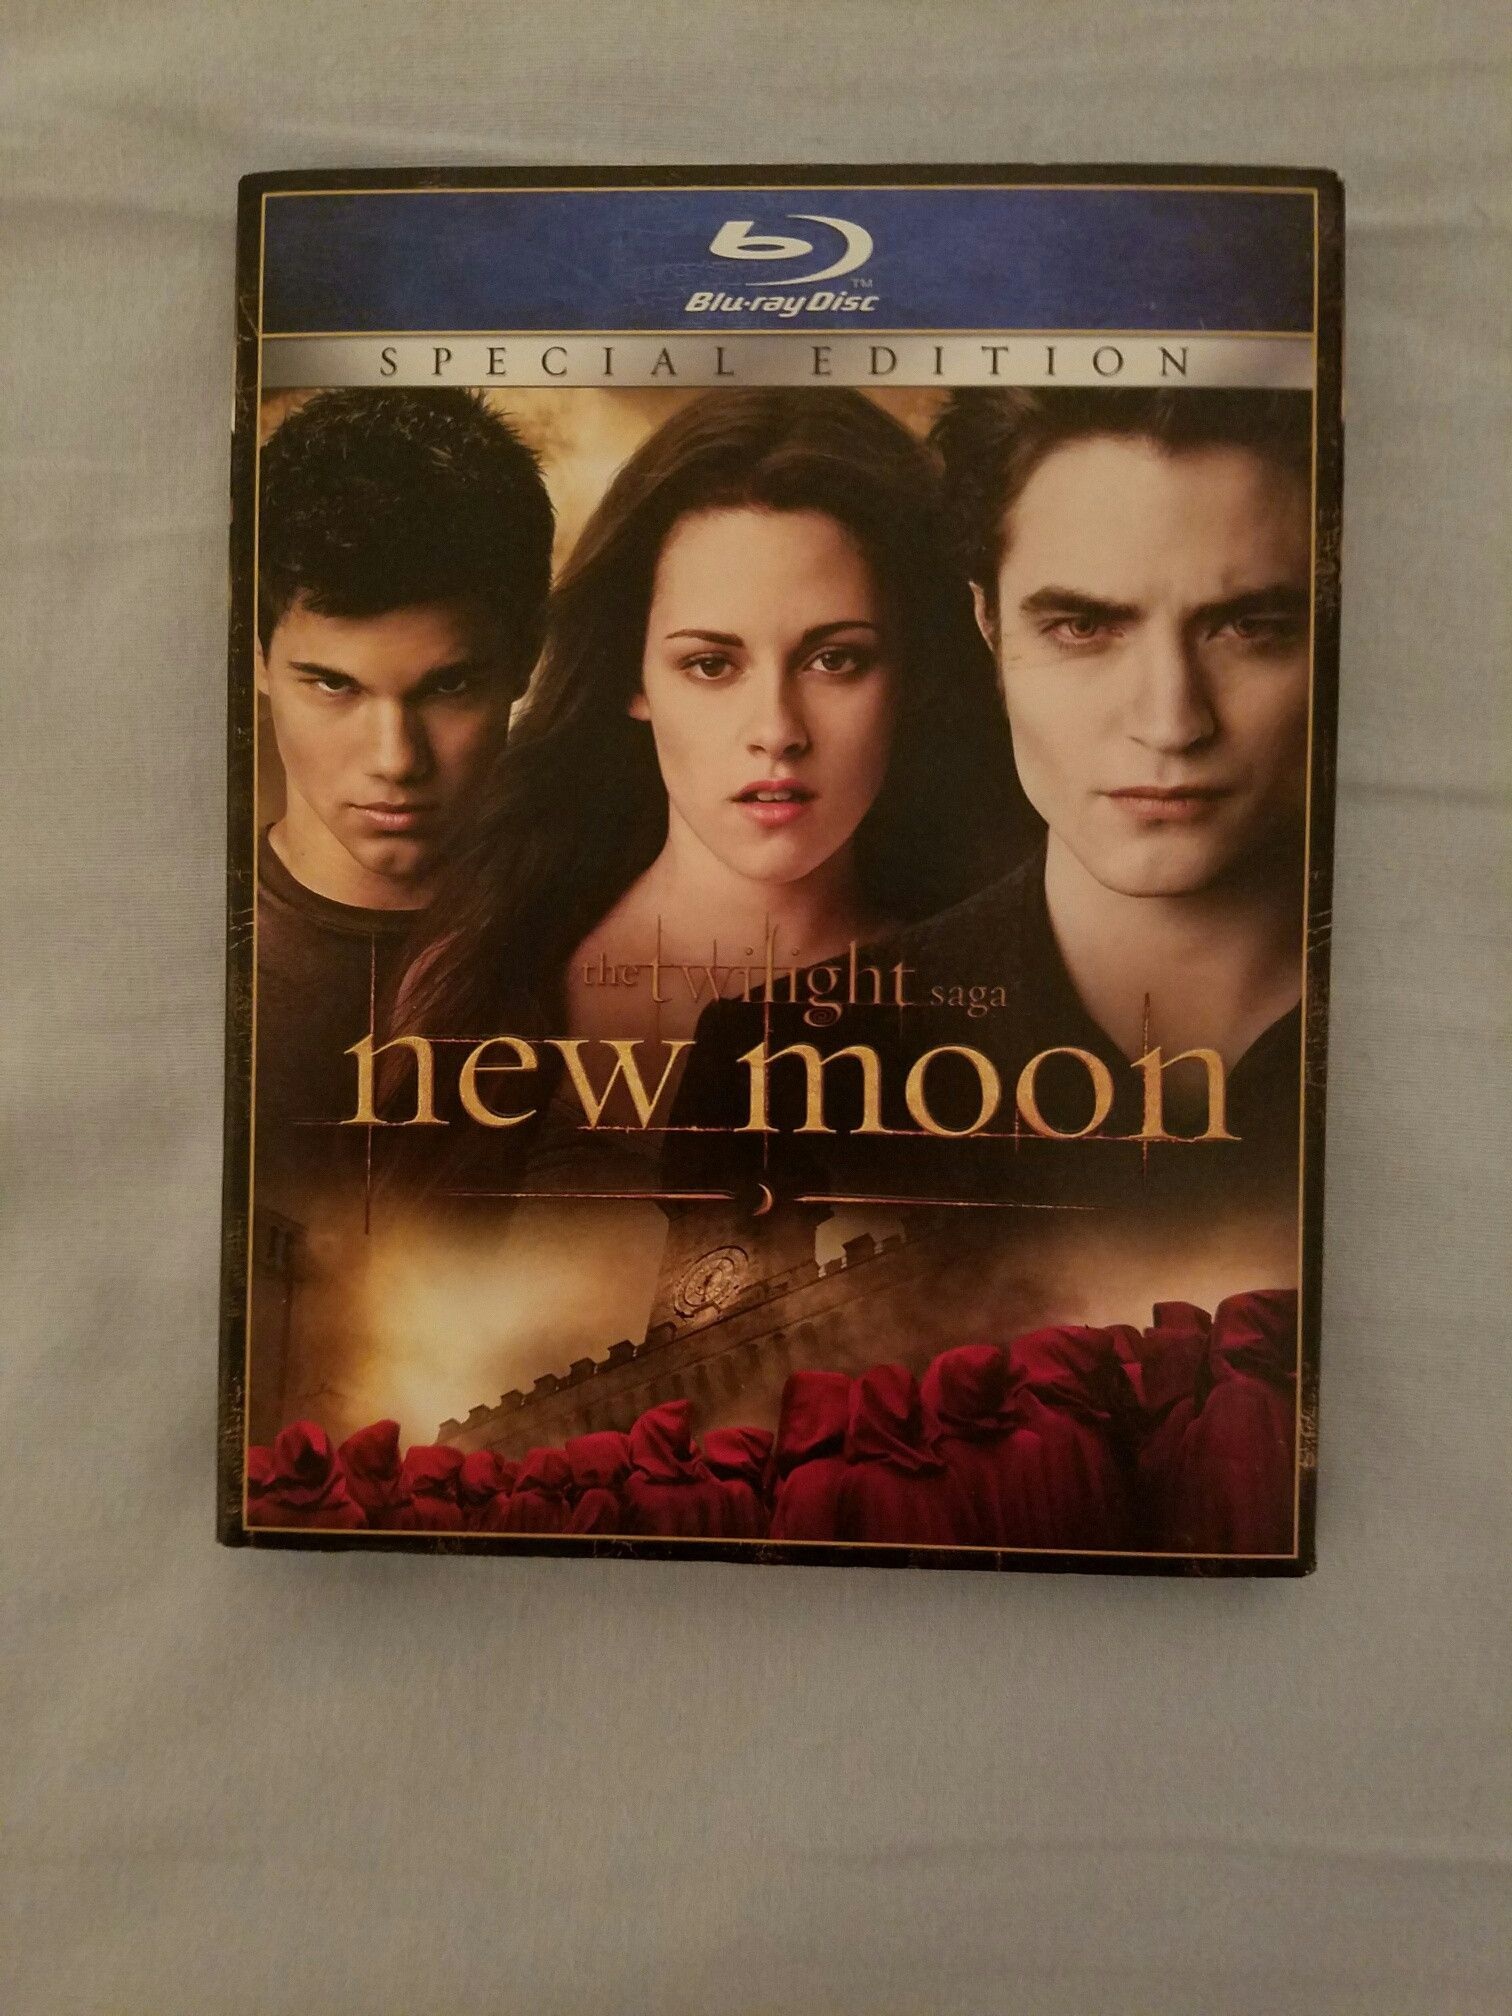 THE TWILIGHT SAGA NEW MOON BLU RAY SPECIAL EDITION DISC